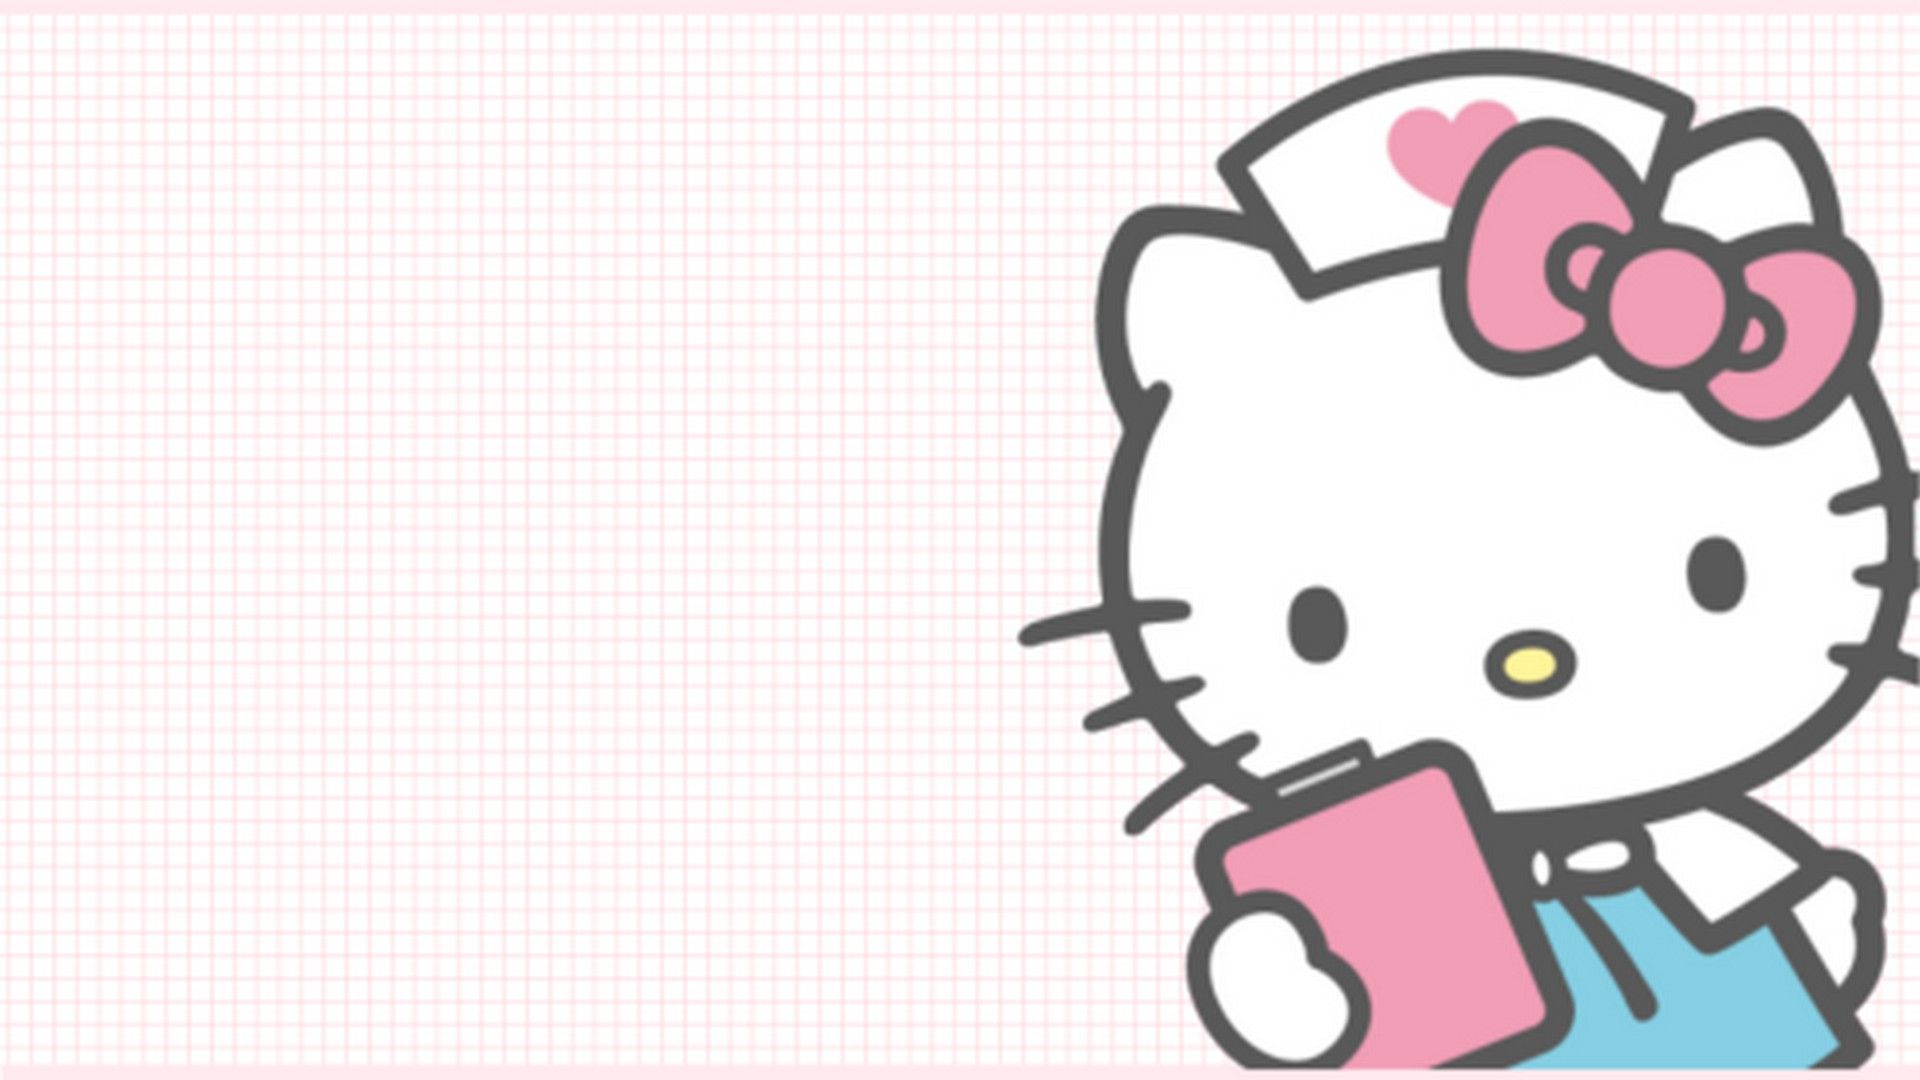 Wallpaper Hello Kitty Characters Desktop Best Hd Wallpapers Hello Kitty Pictures Hello Kitty Characters Hello Kitty Wallpaper